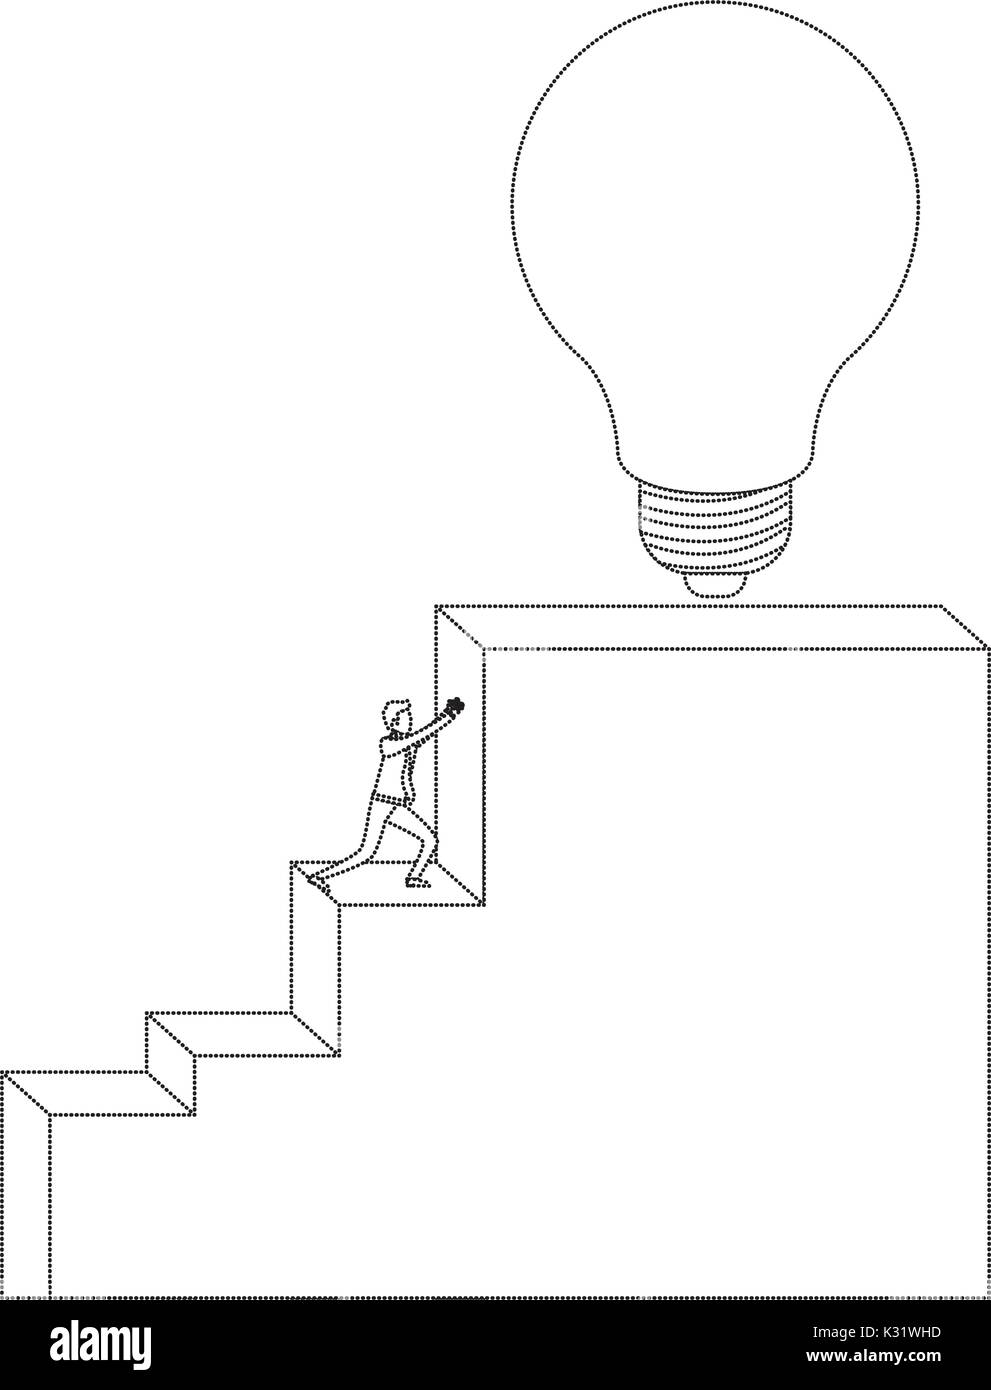 Businessman Pushing Stair Block Structure With Light Bulb In The Top  Monochrome Silhouette Dotted